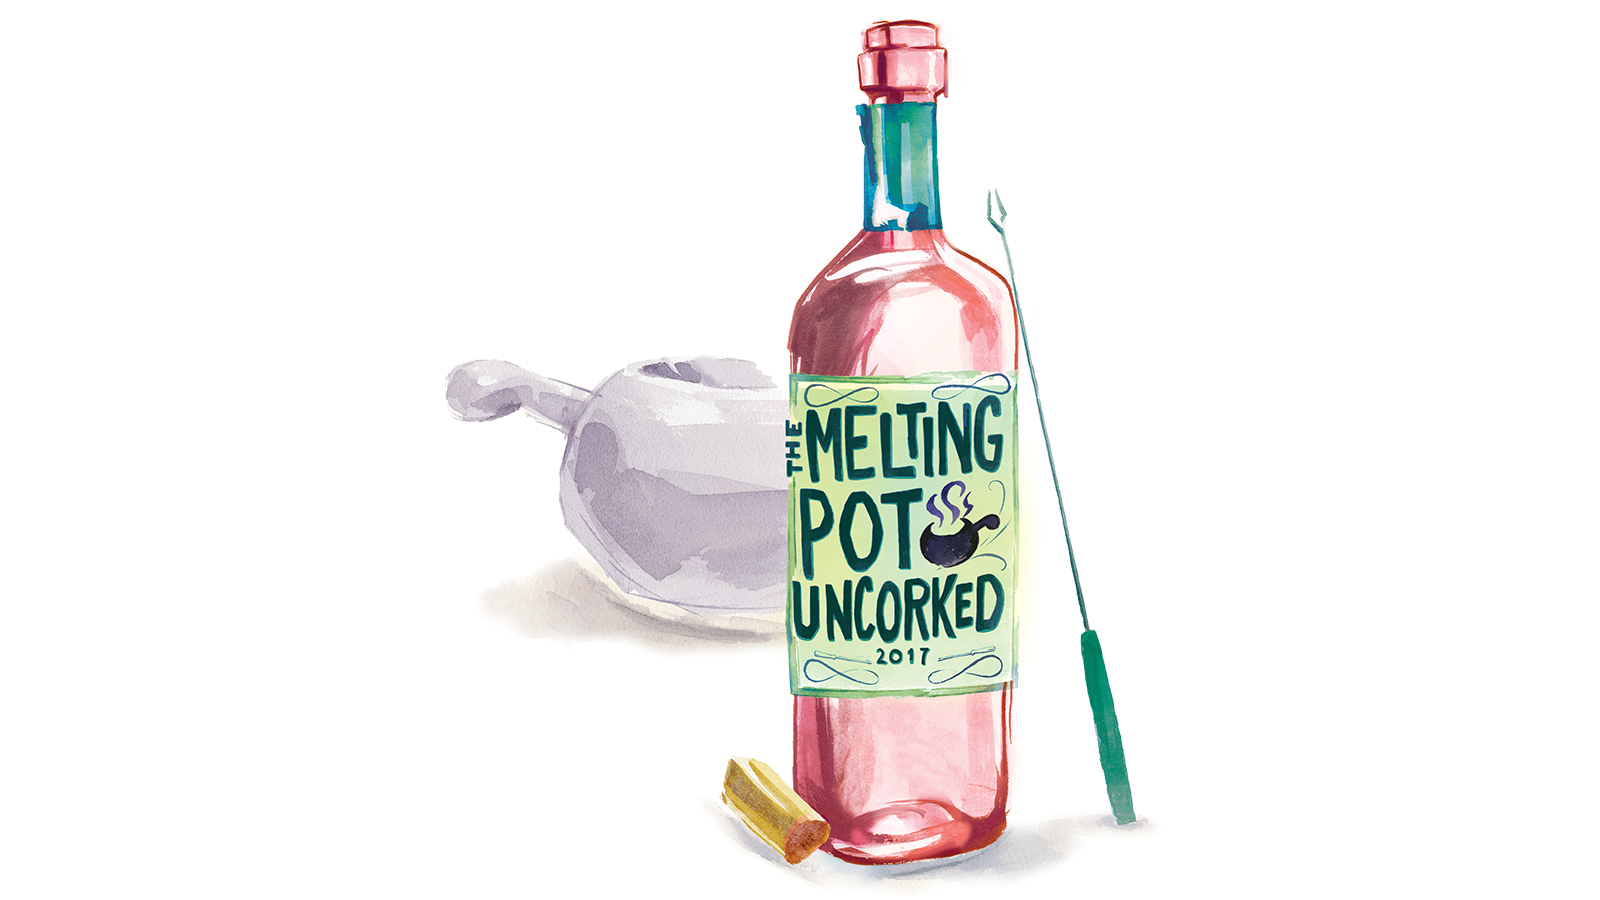 The Melting Pot: Uncorked 2017